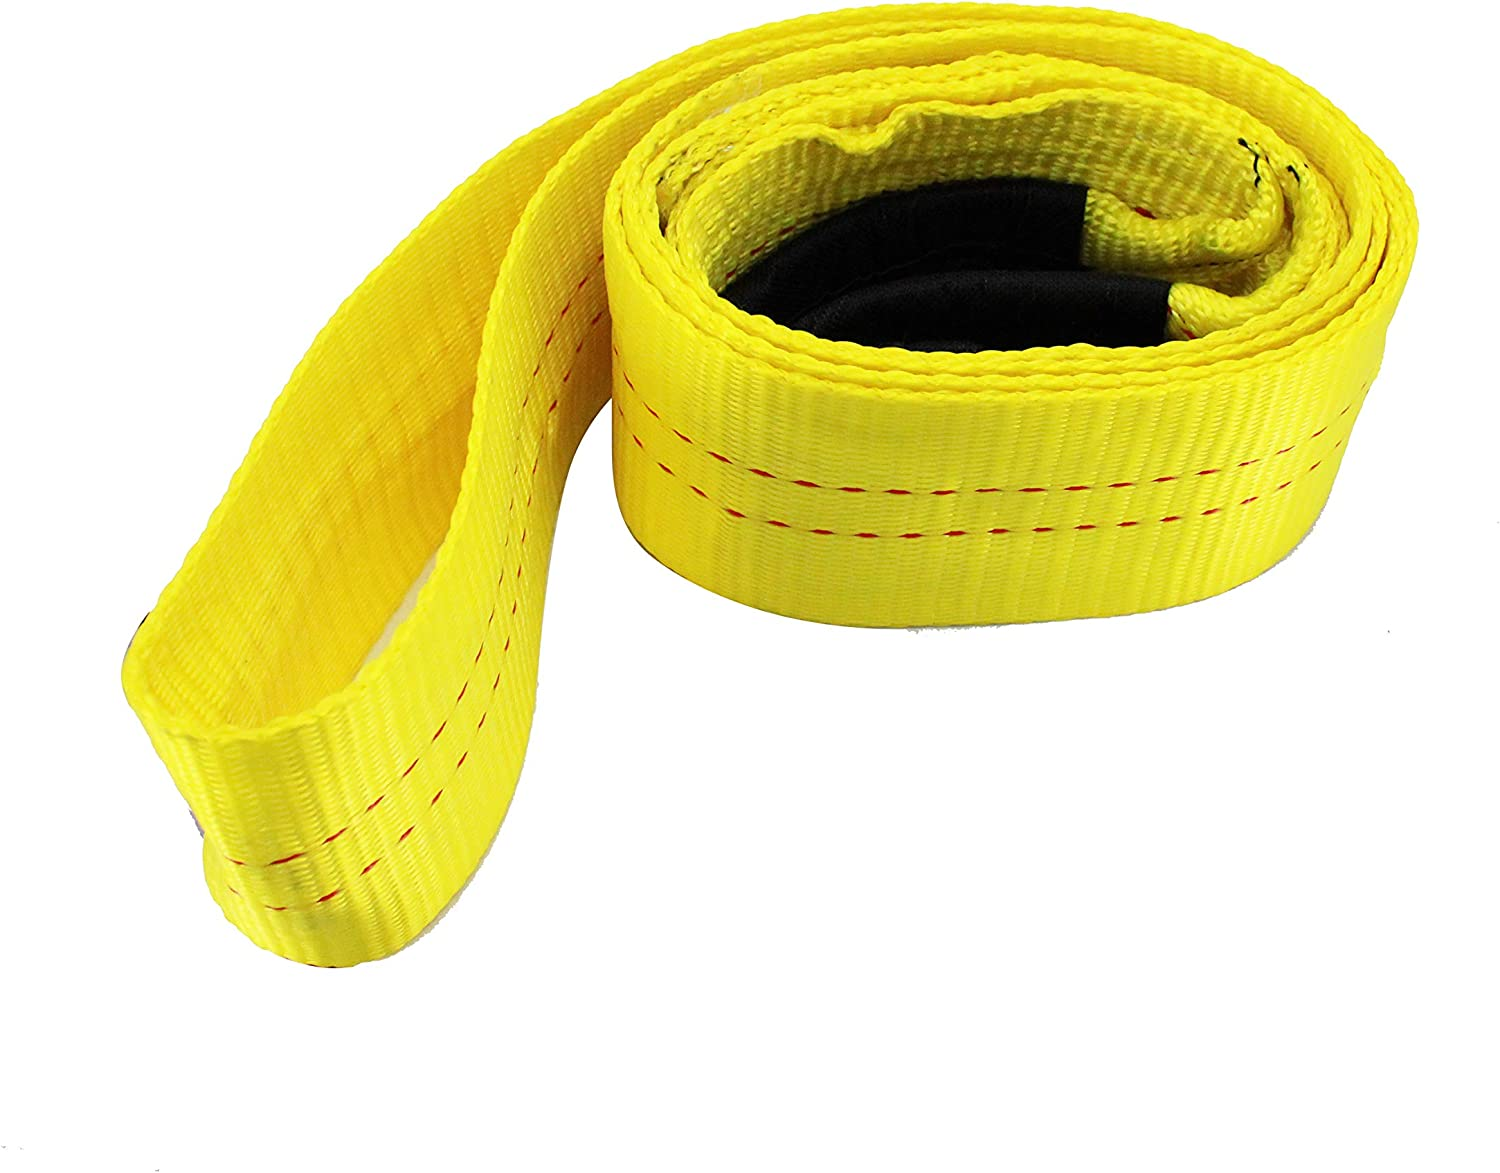 R 8 Foot Tree Saver 3 Inch Tow Strap 30,000 Pound Capacity HFS Winch Strap